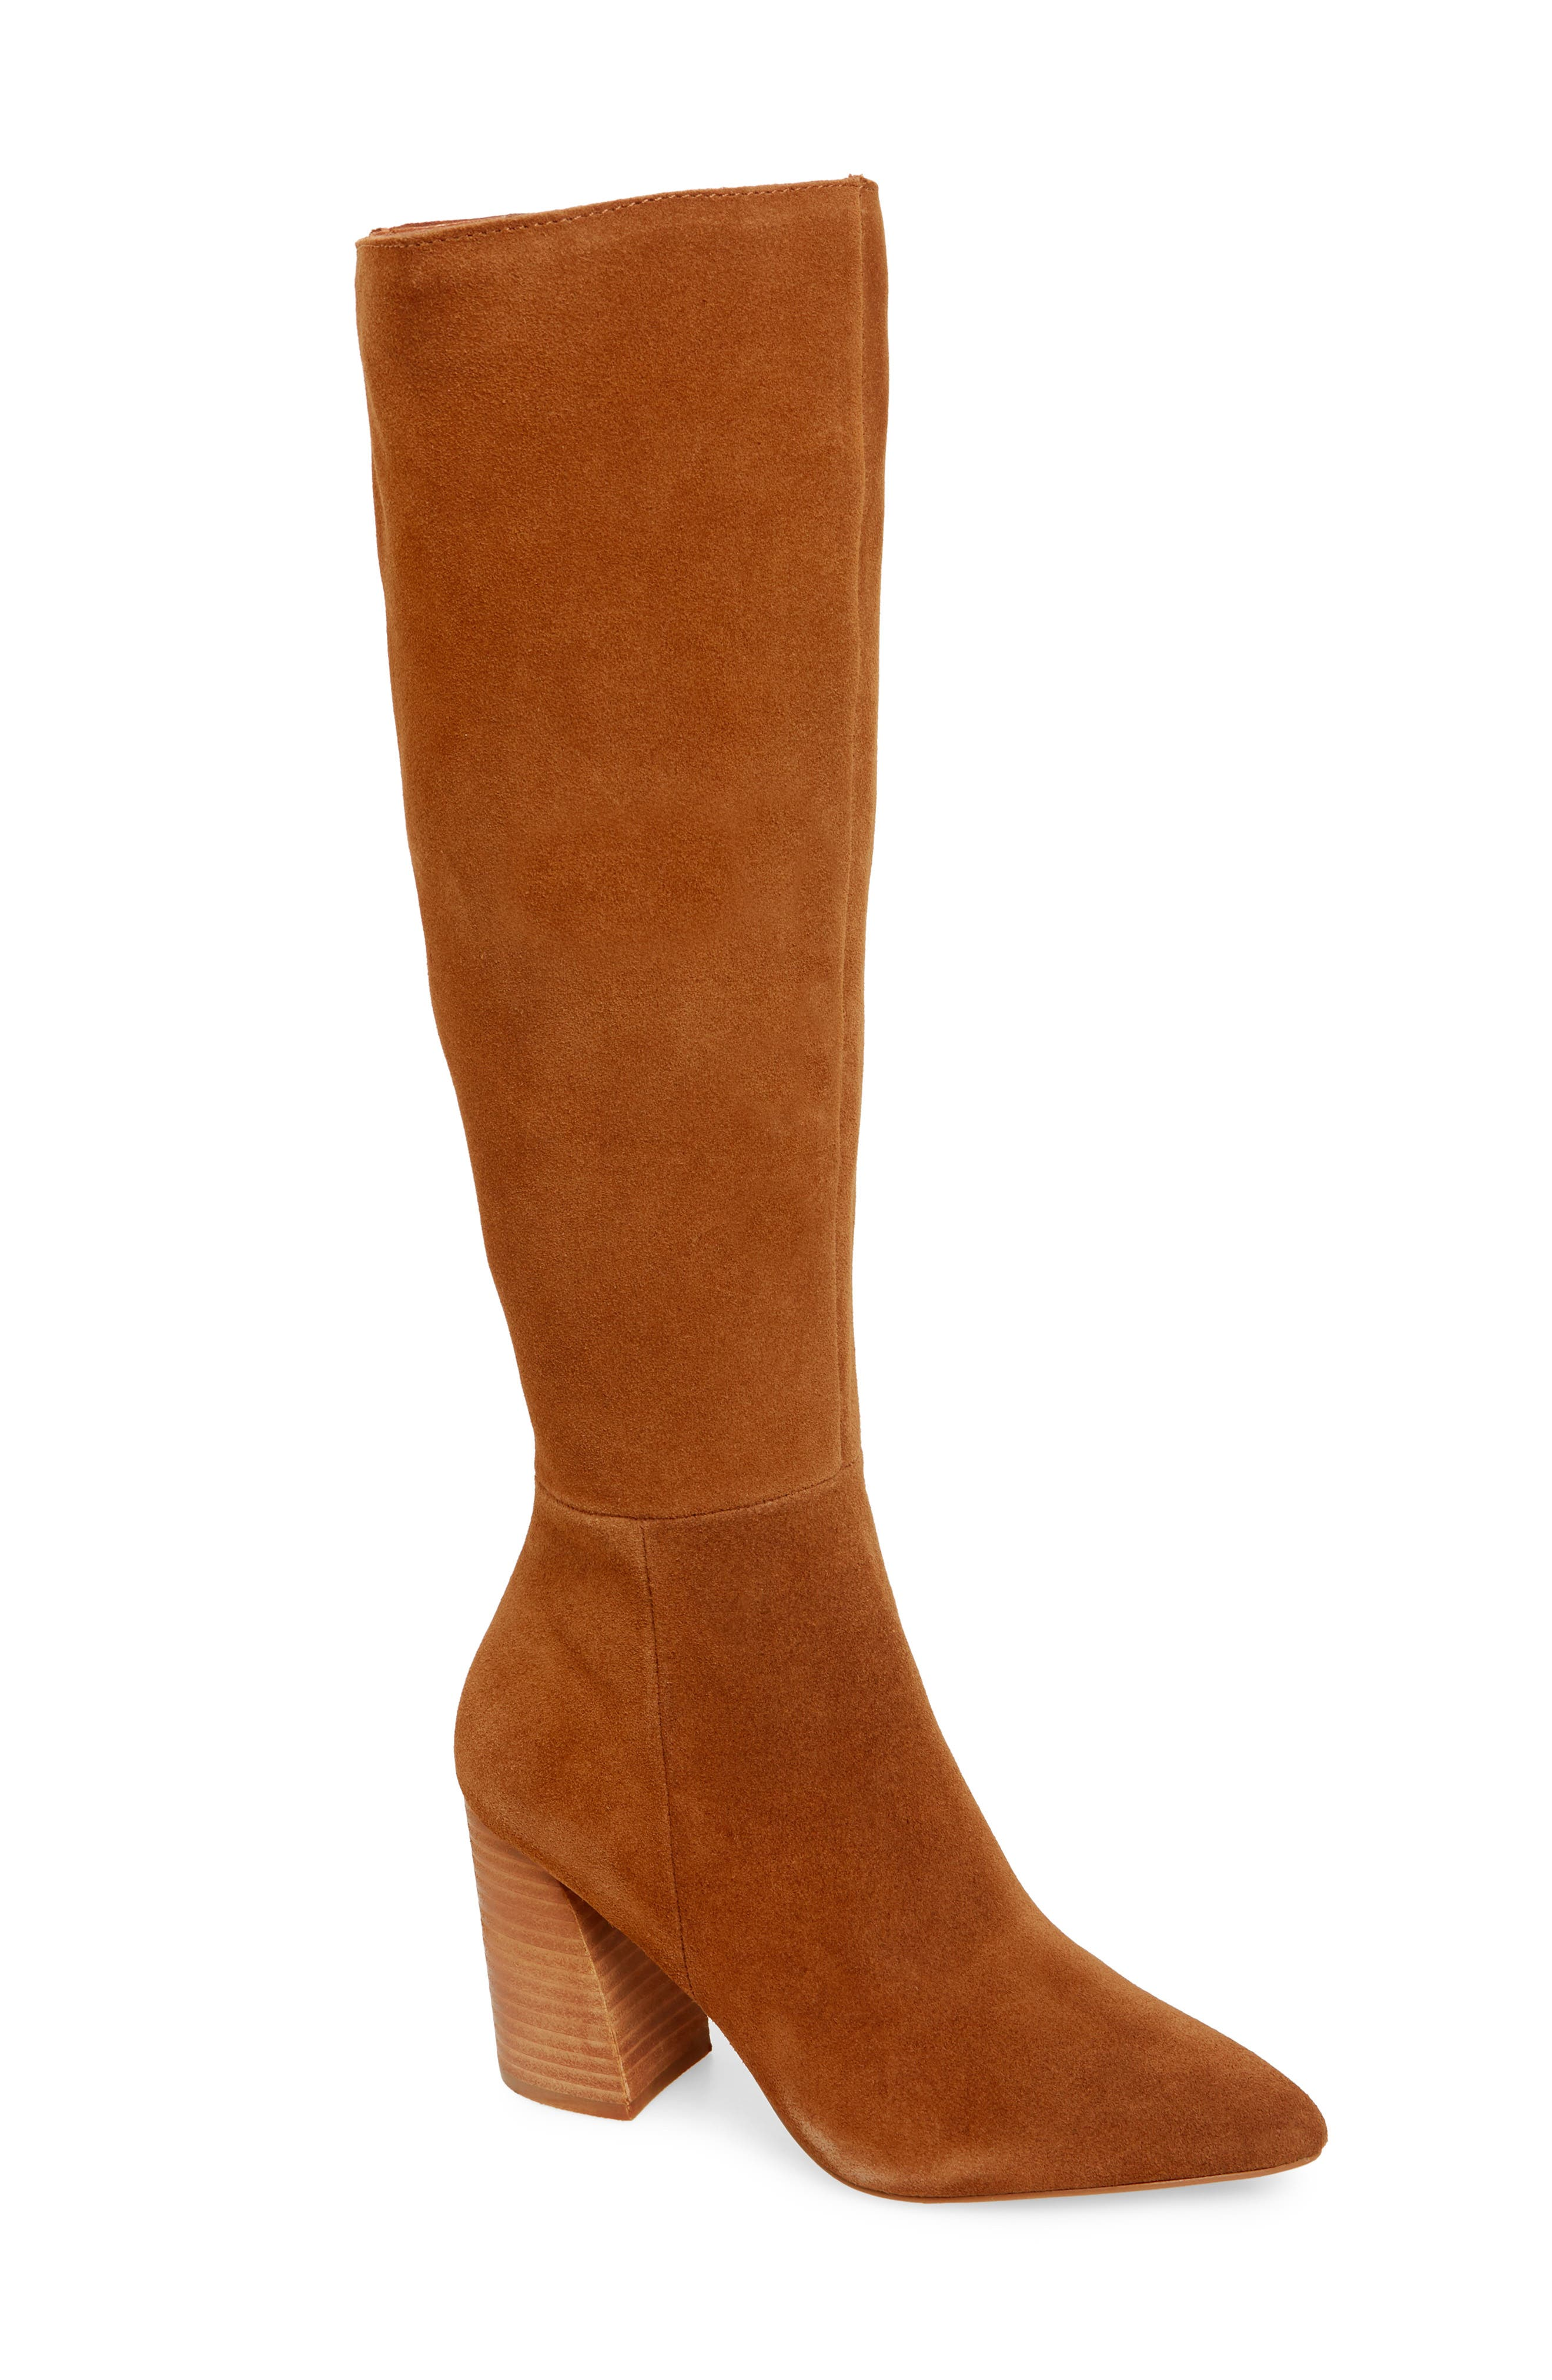 Serve Knee High Boot,                         Main,                         color, CHESTNUT SUEDE